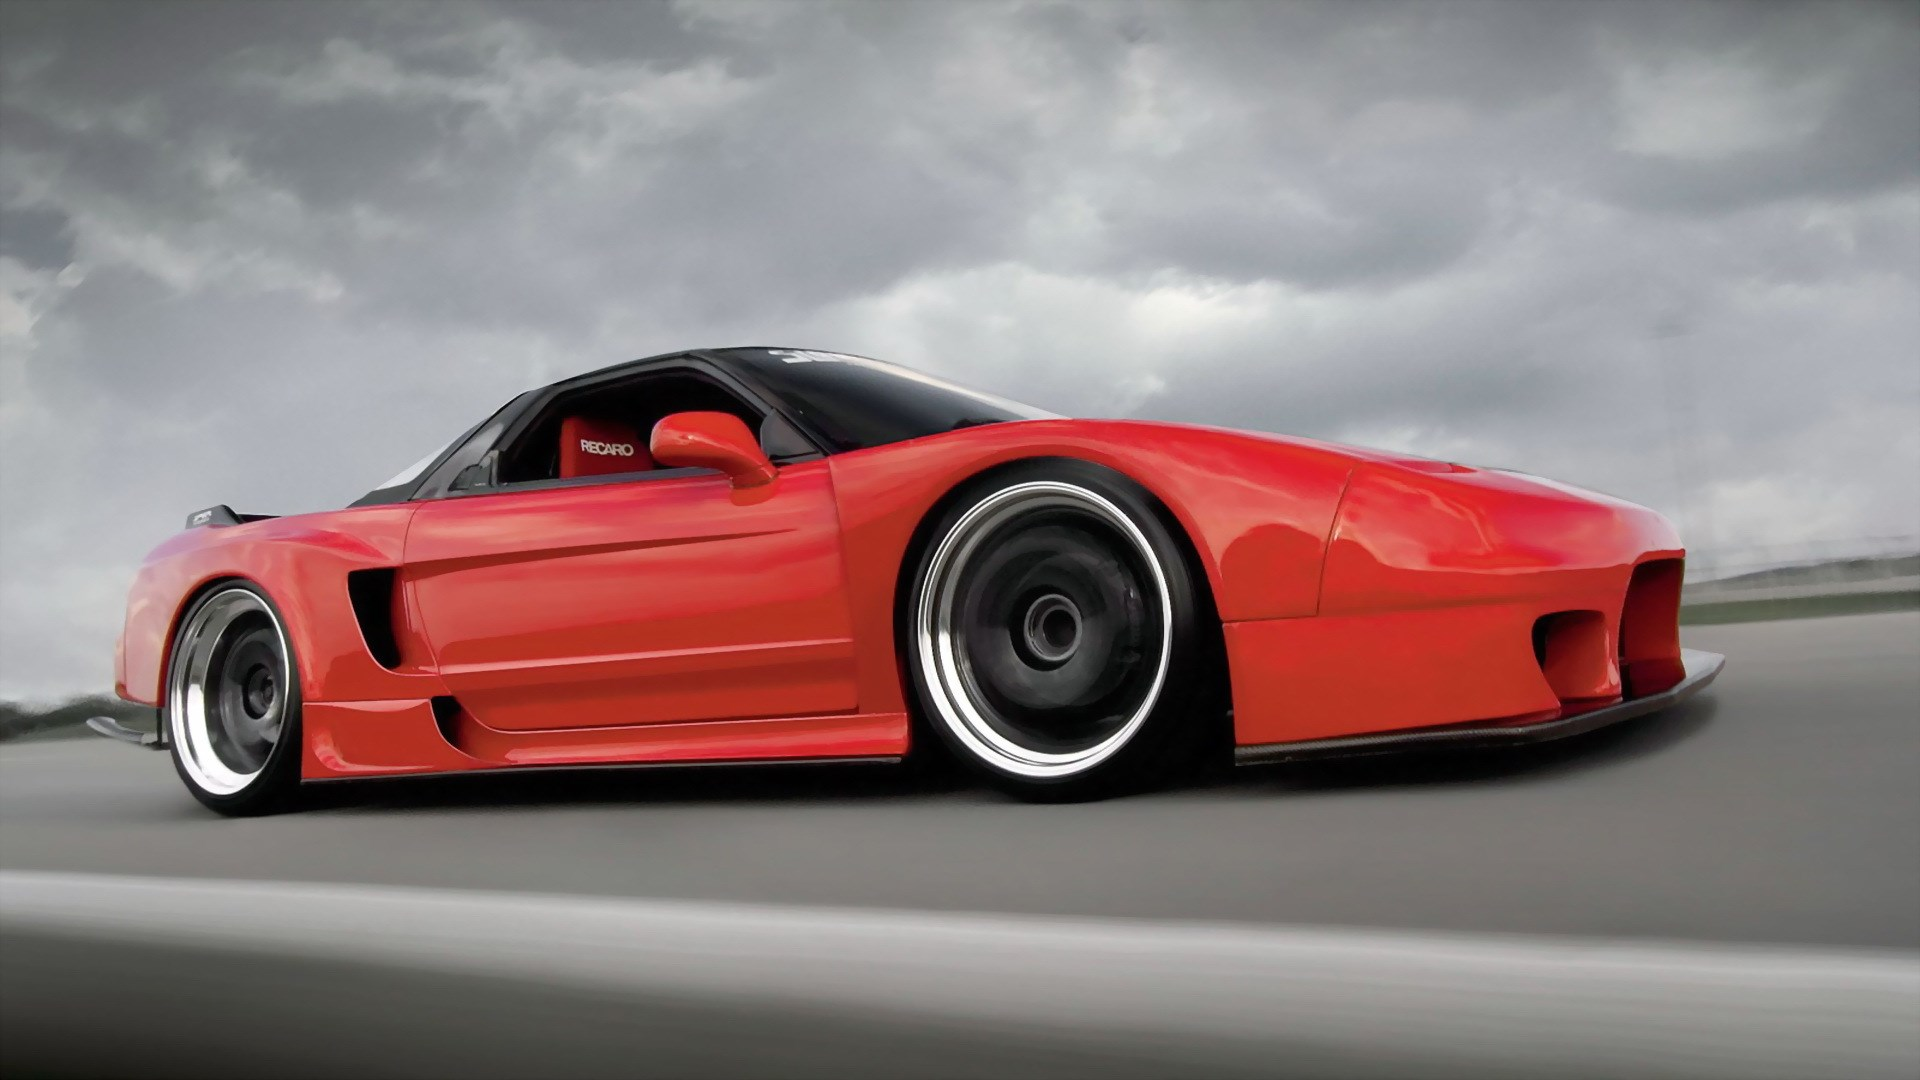 Honda nsx full hd wallpaper and background image 1920x1080 id447701 vehicles honda nsx wallpaper voltagebd Gallery